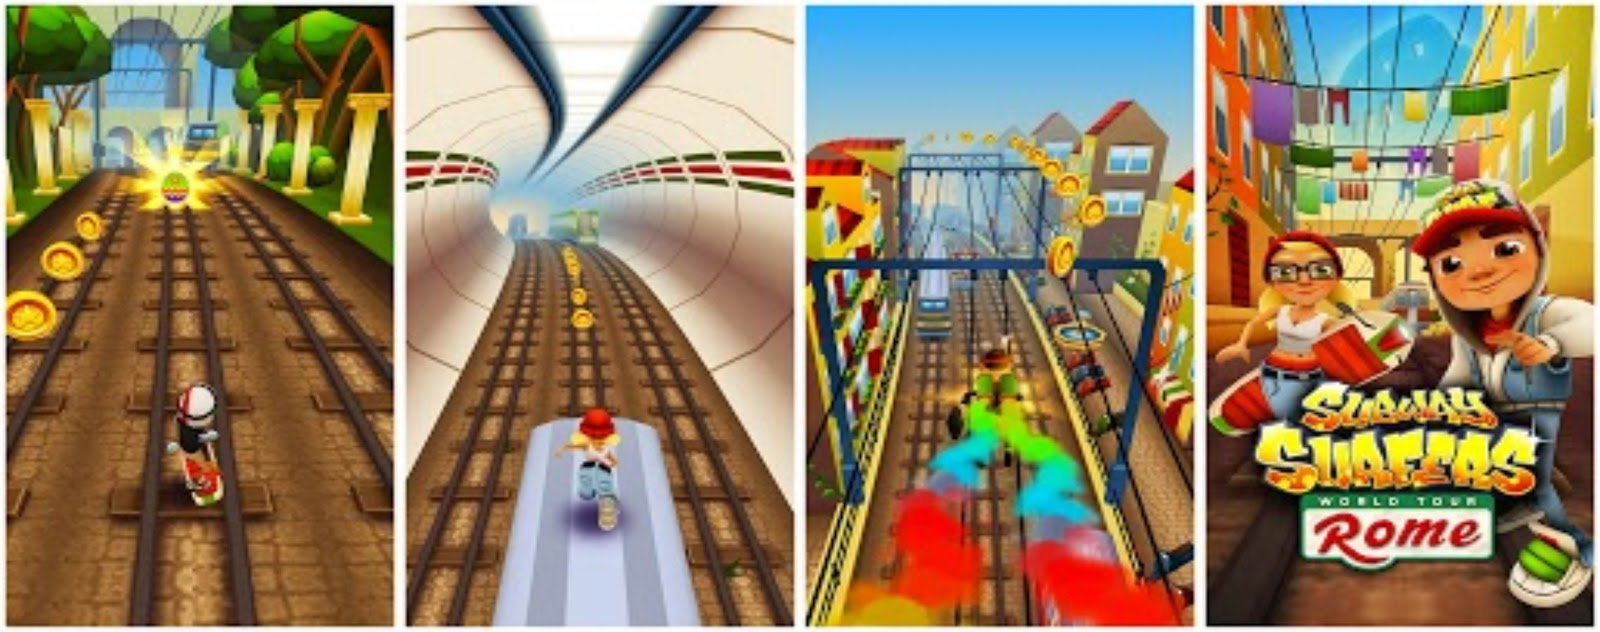 subway surfers android apk full gamebunkerz blogspot com jpg subway